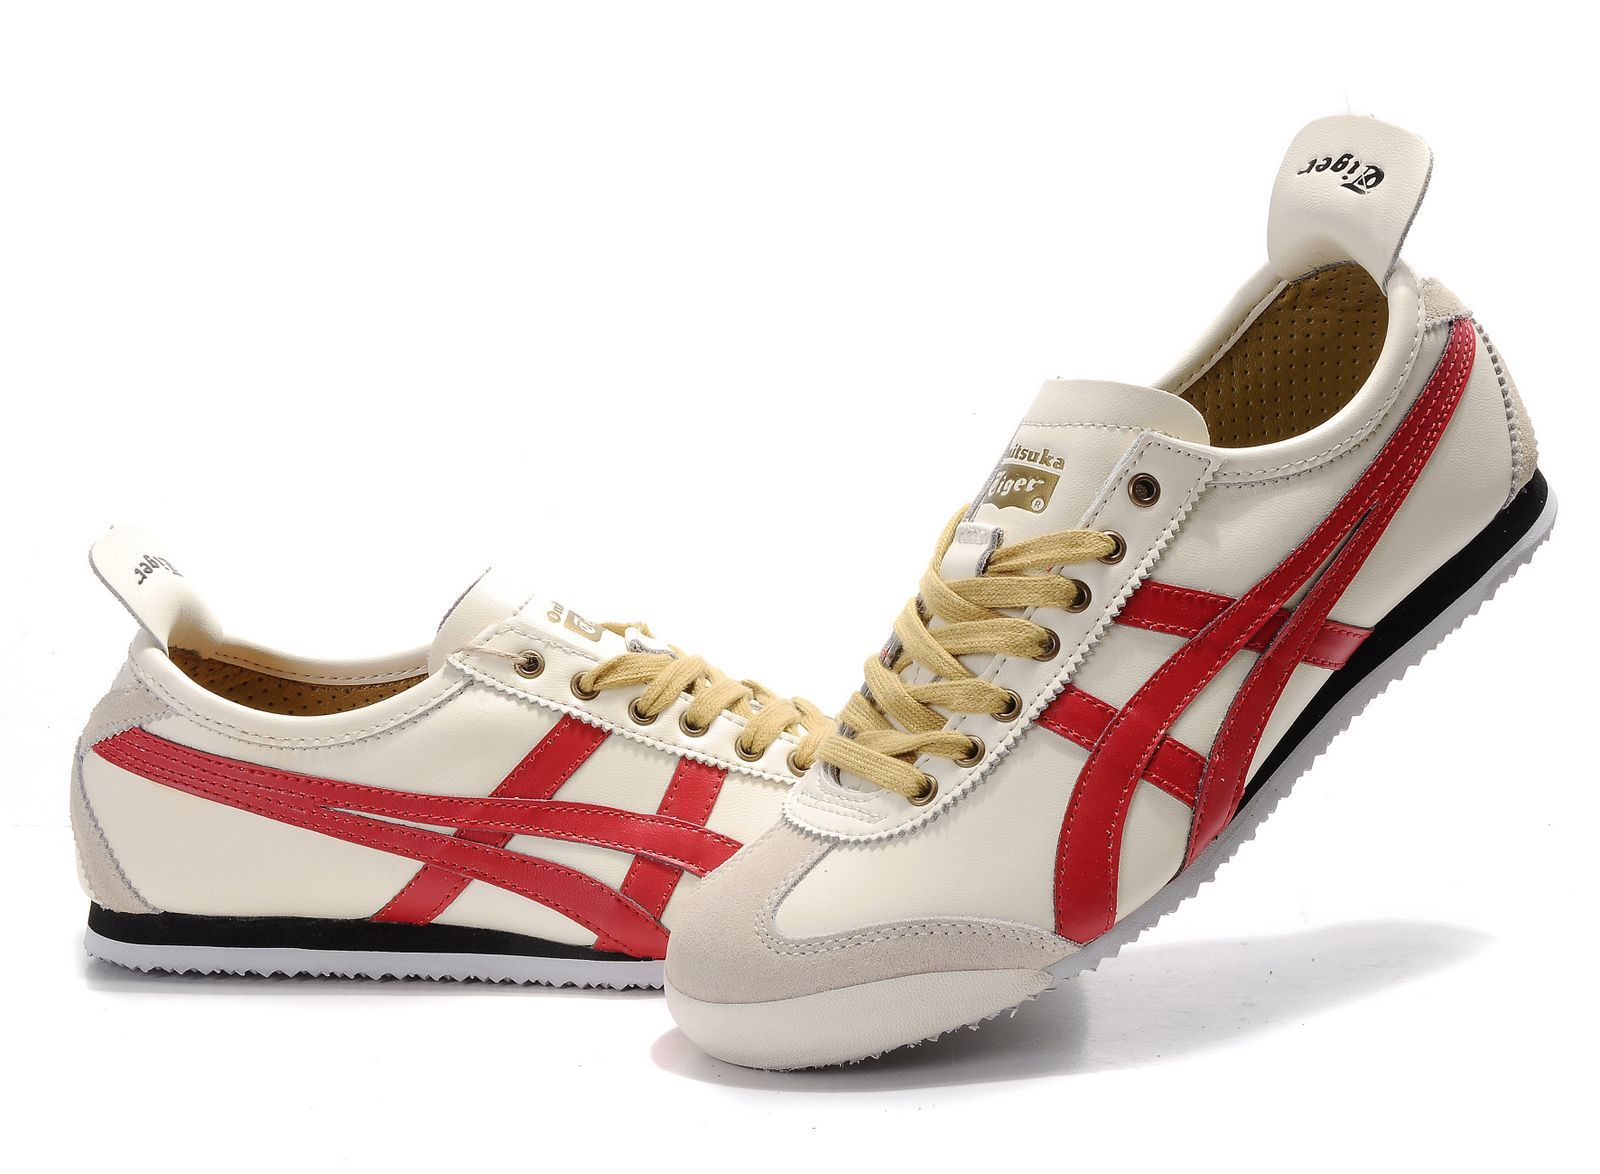 Onitsuka Tiger Mexico 66 Lauta Beige/Red